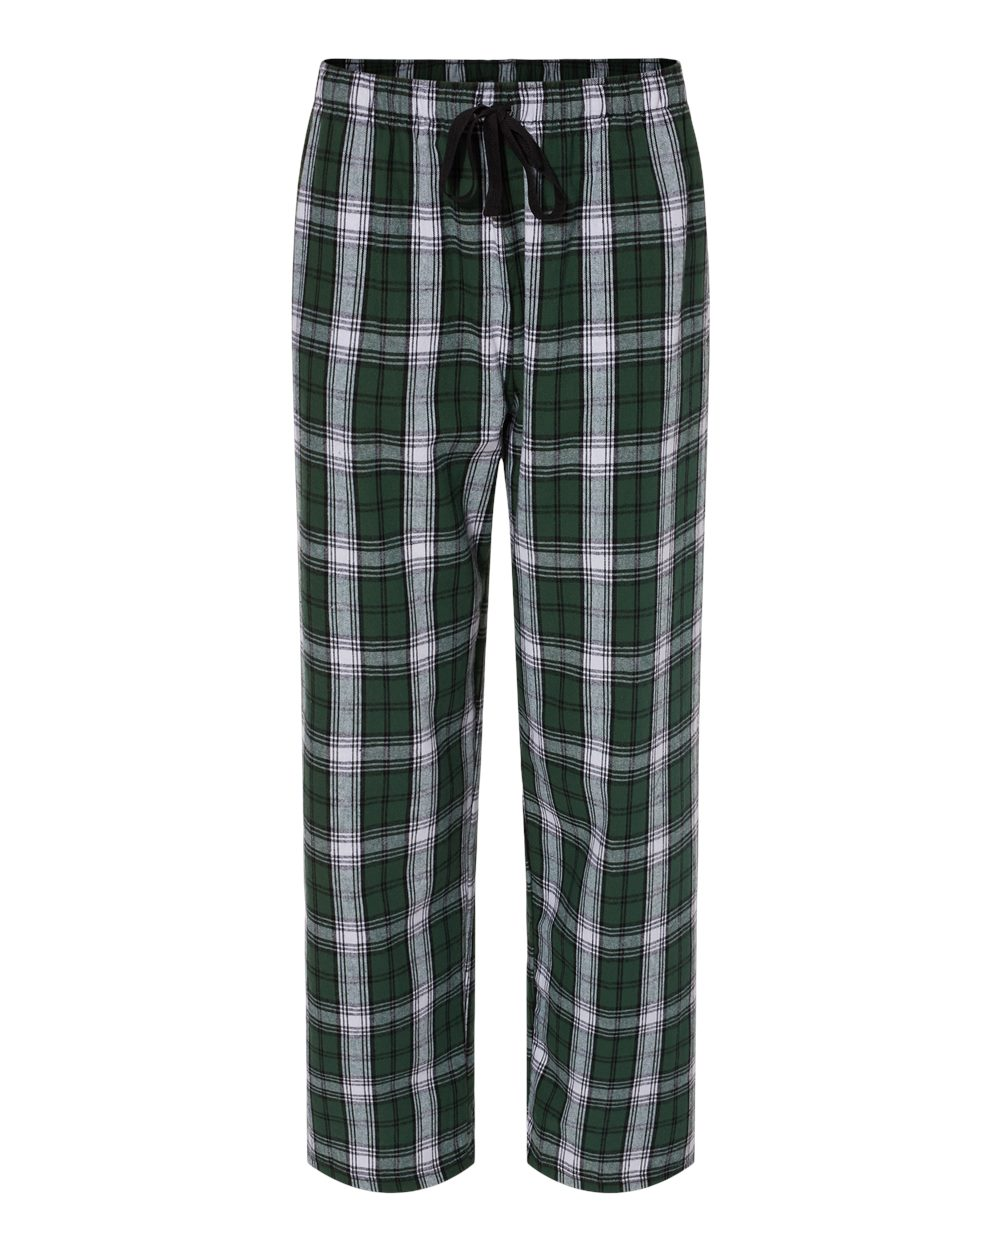 Boxercraft-Unisex-Flannel-Pants-With-Pockets-Pajama-Pants-F20-up-to-2XL thumbnail 21